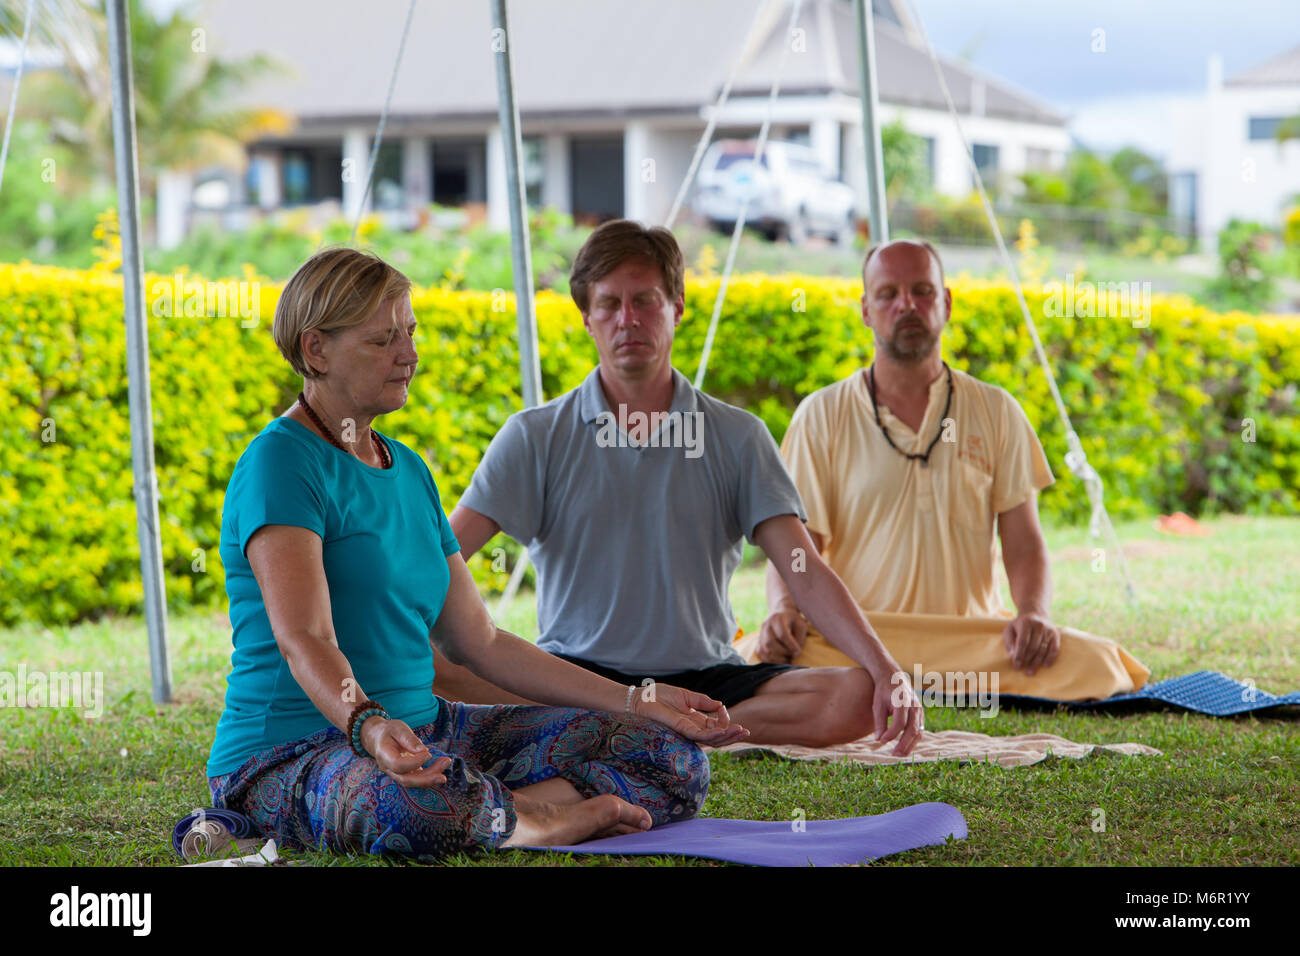 People sitting on their yoga mats outside in nature practising meditation with crossed legs. Attending retreat in - Stock Image